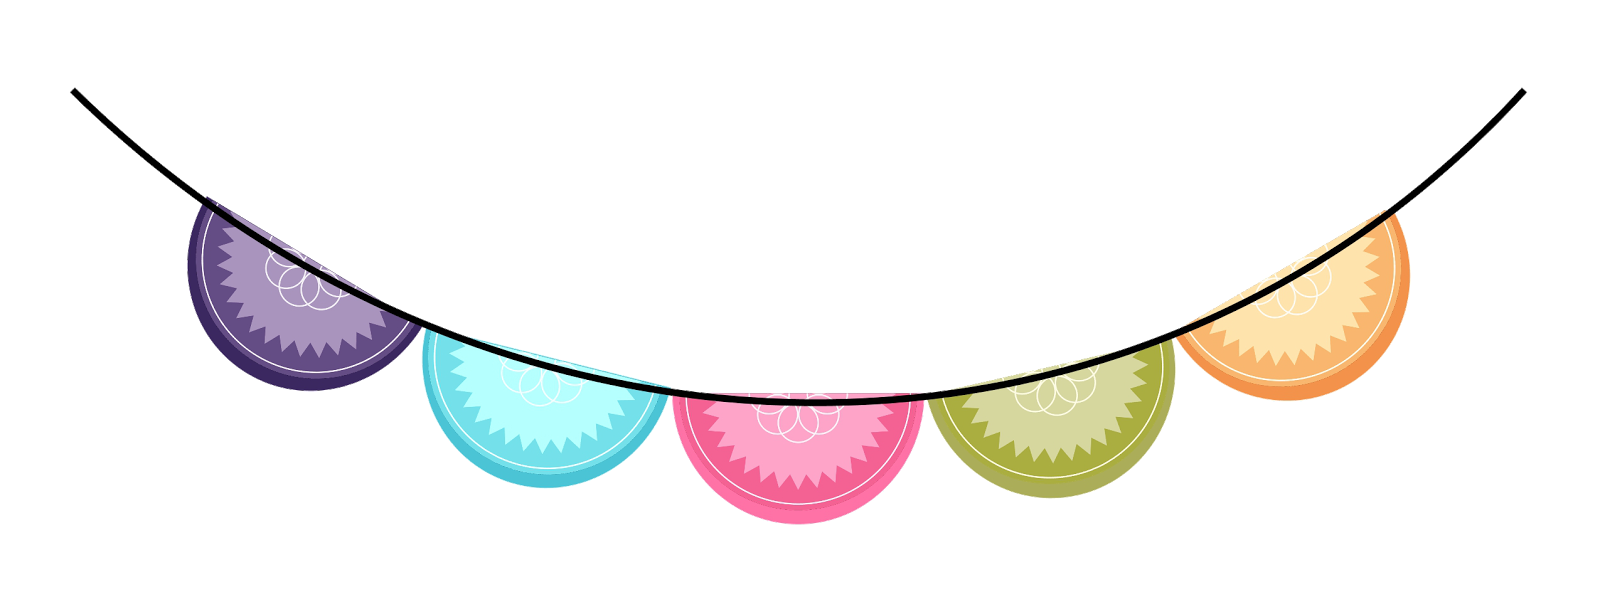 Oh yeah another freebie. February clipart banner